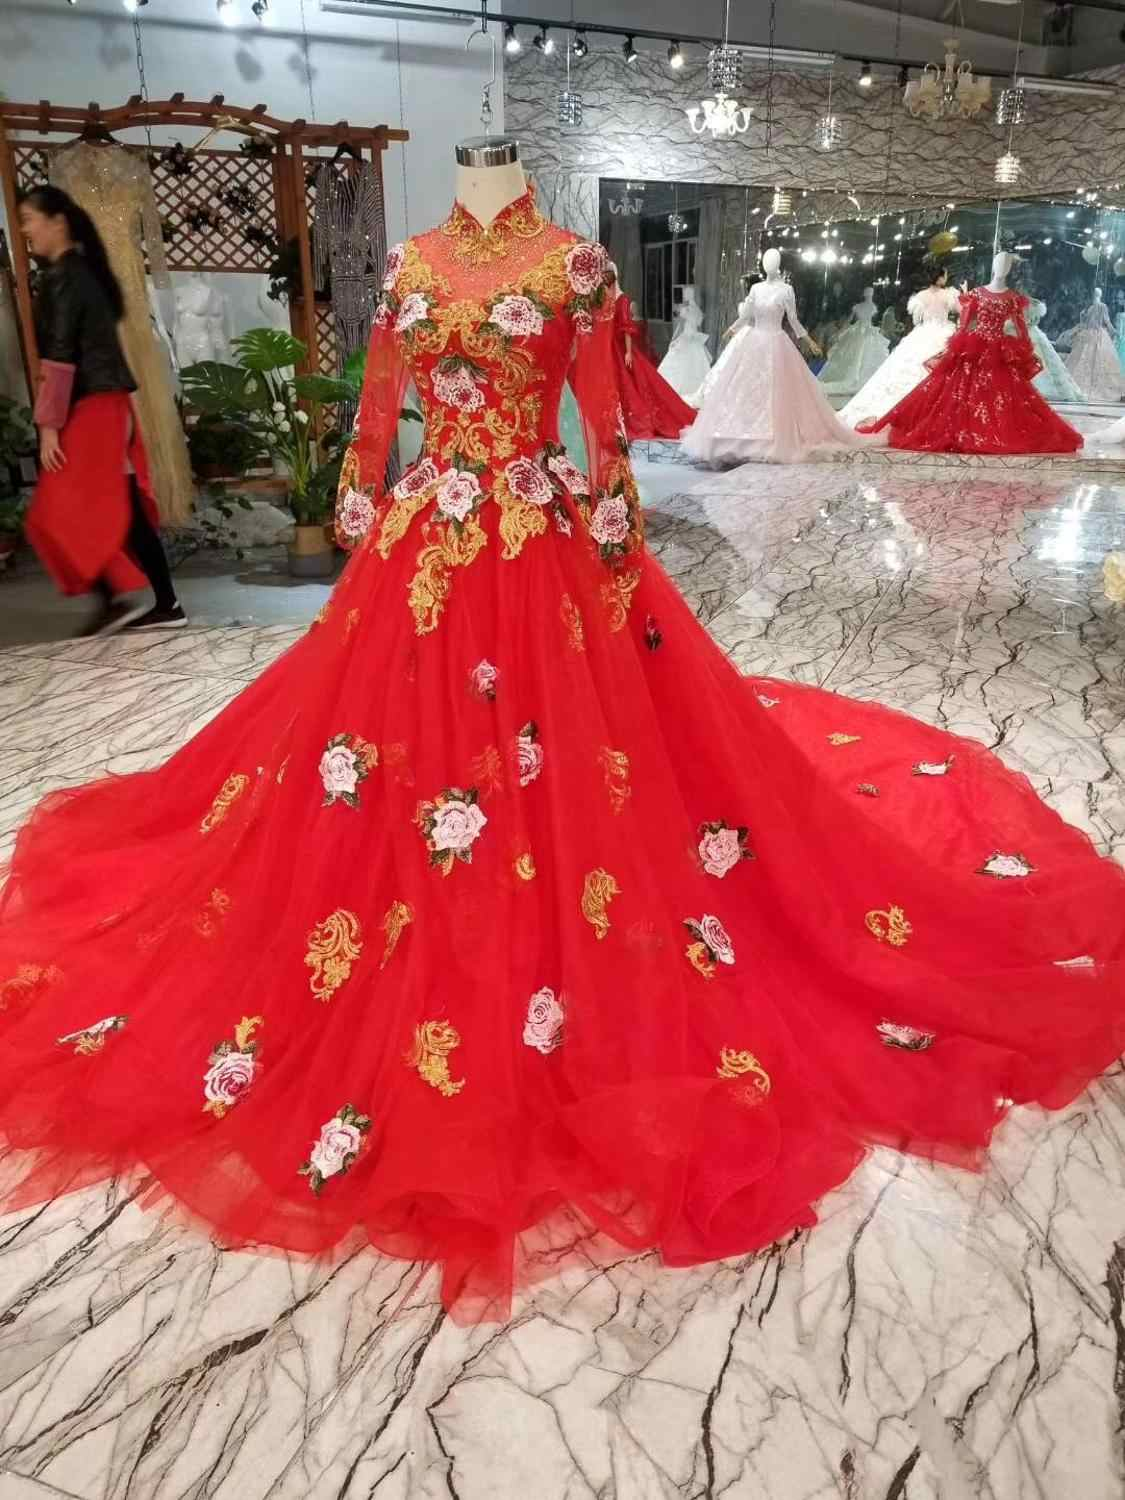 Alilove 2019 Ball Gown/High Neck/Red/Simple/New/Style/Big Size/Bridal/Sexy Wedding Dress With Sleeves/Lace/Women/Luxury